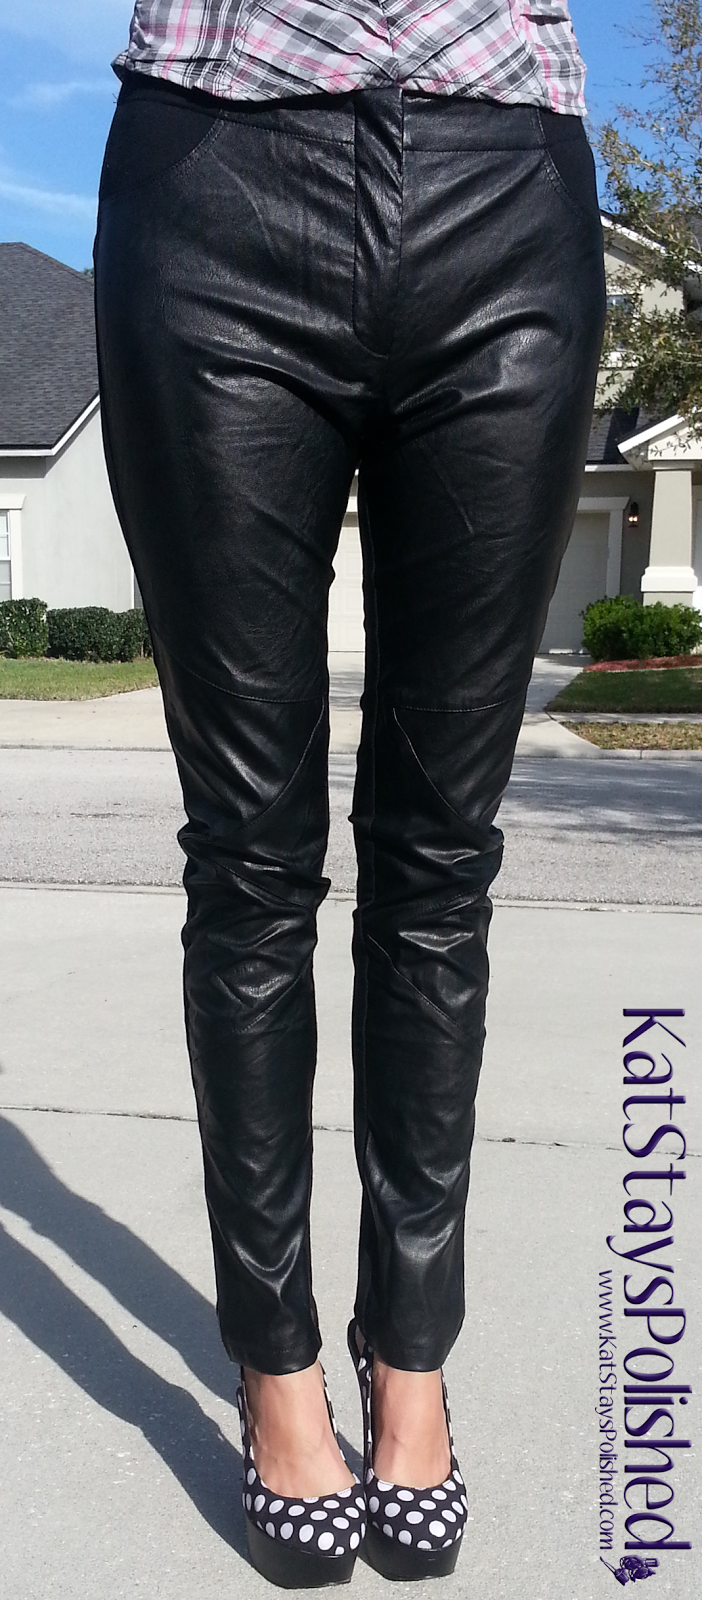 Madonna & Co - Vegan Leather Ponte Leggings | Kat Stays Polished